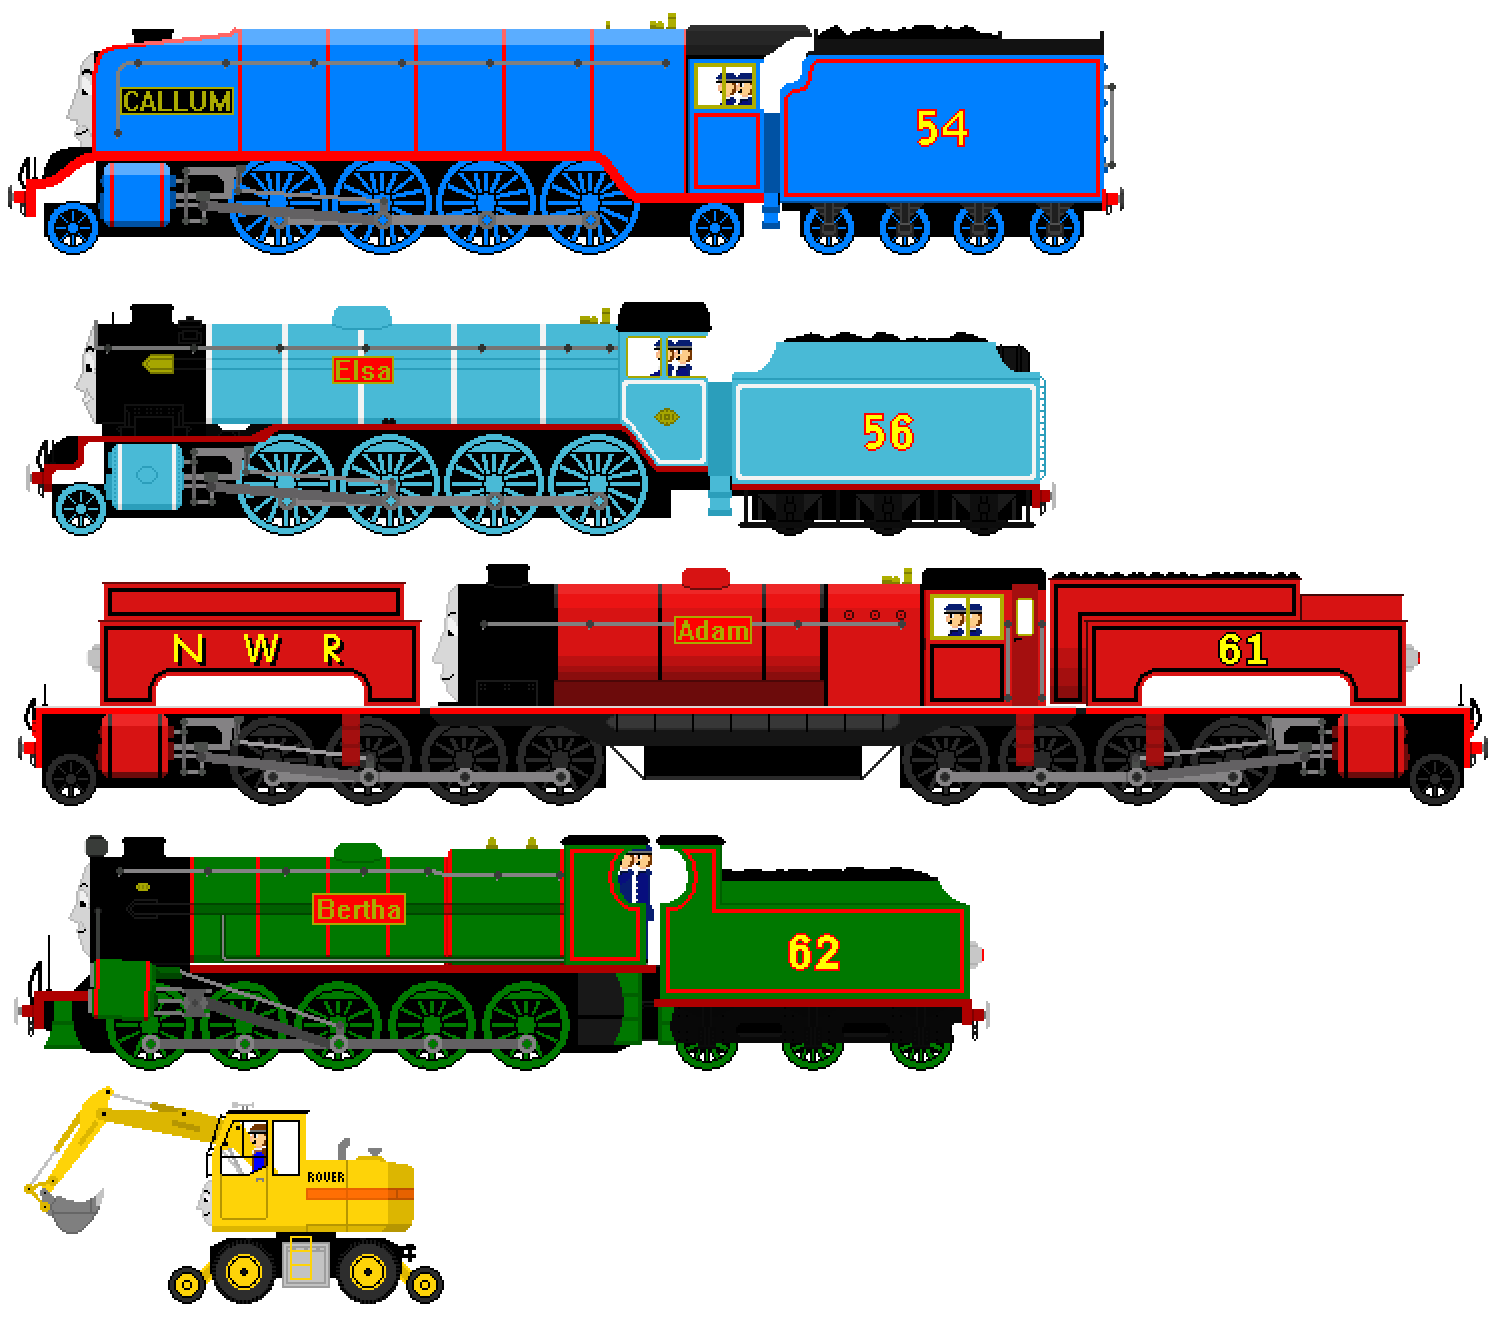 Calling All Engines! | Thomas the Tank Engine Wikia …